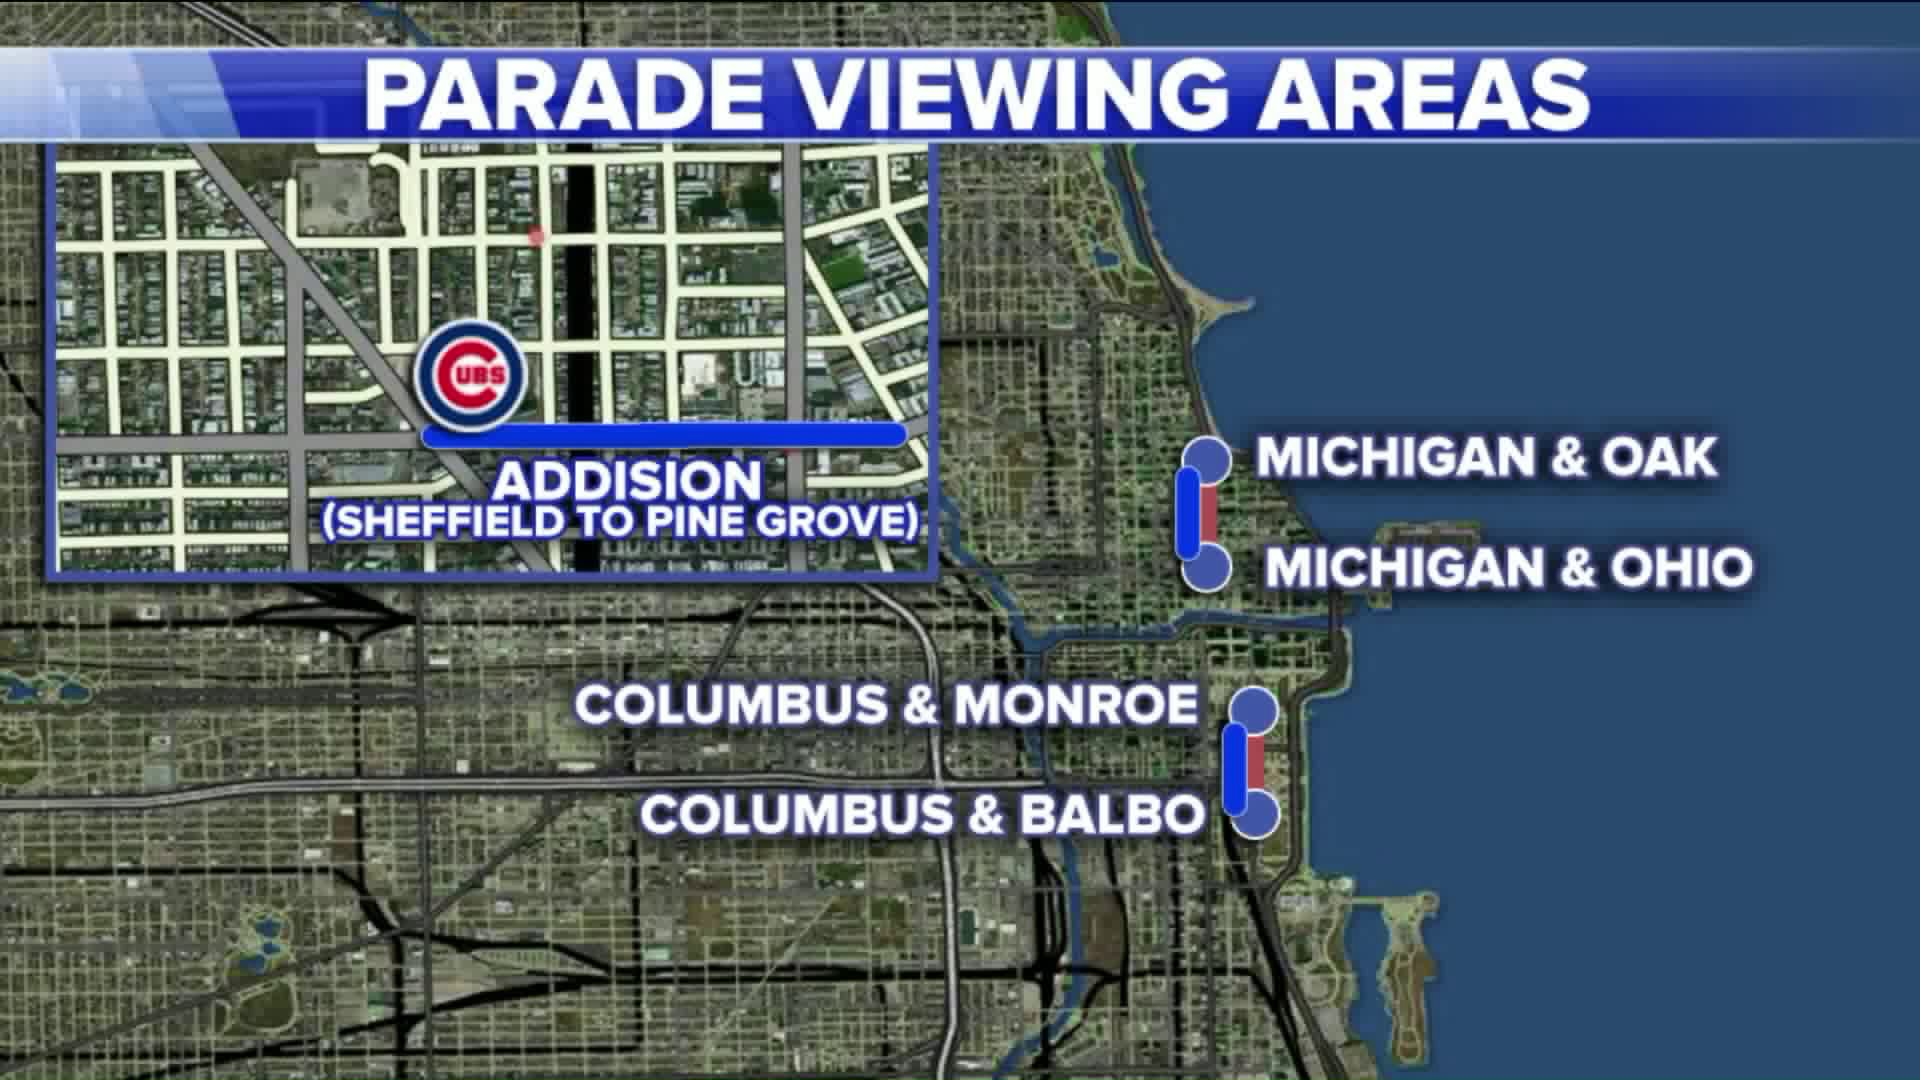 Parade viewing areas